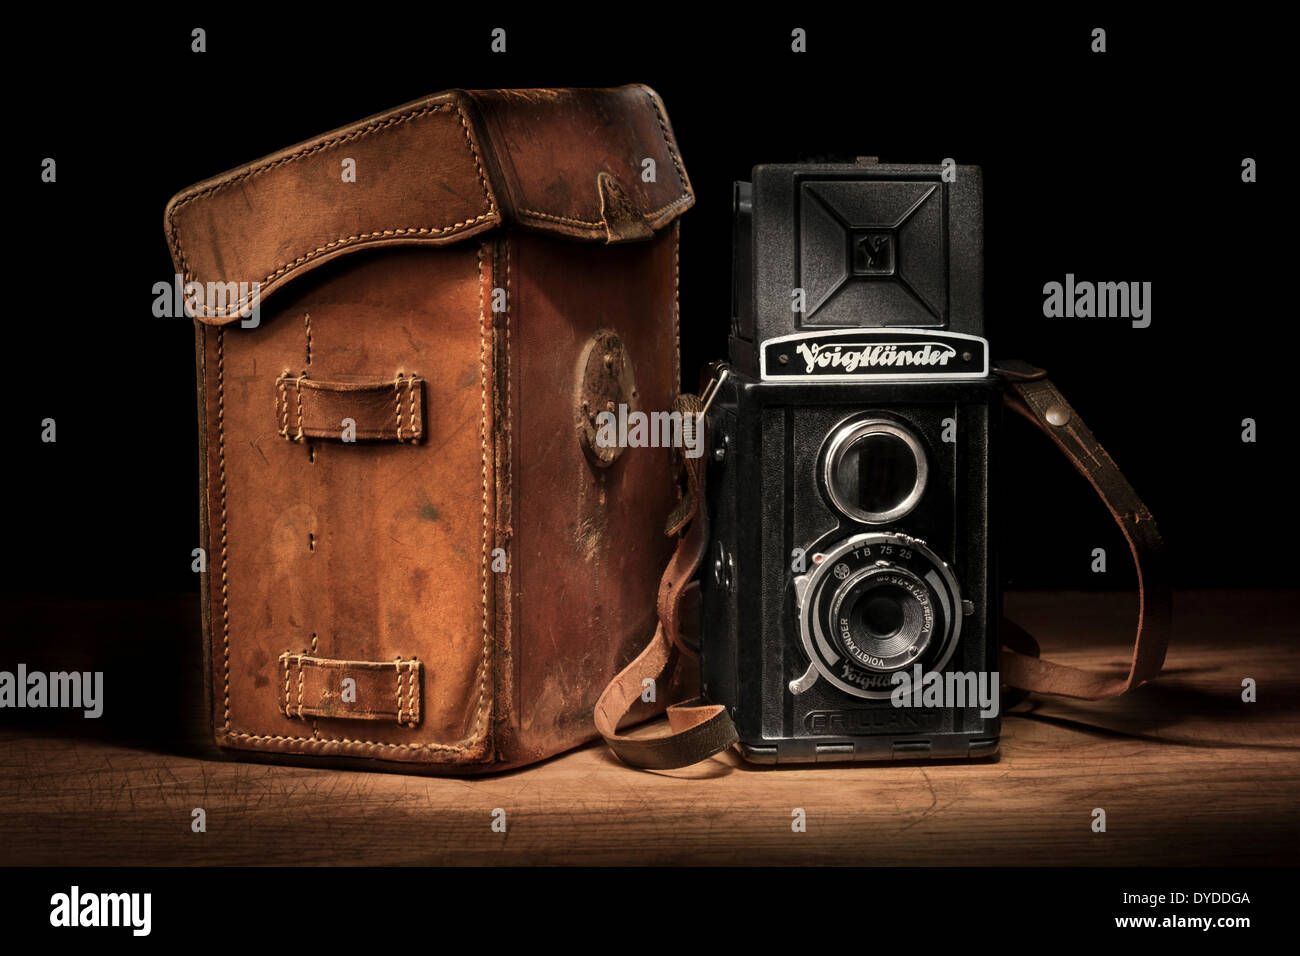 Vintage Voigtlander Brilliant camera with leather case and roll films. - Stock Image